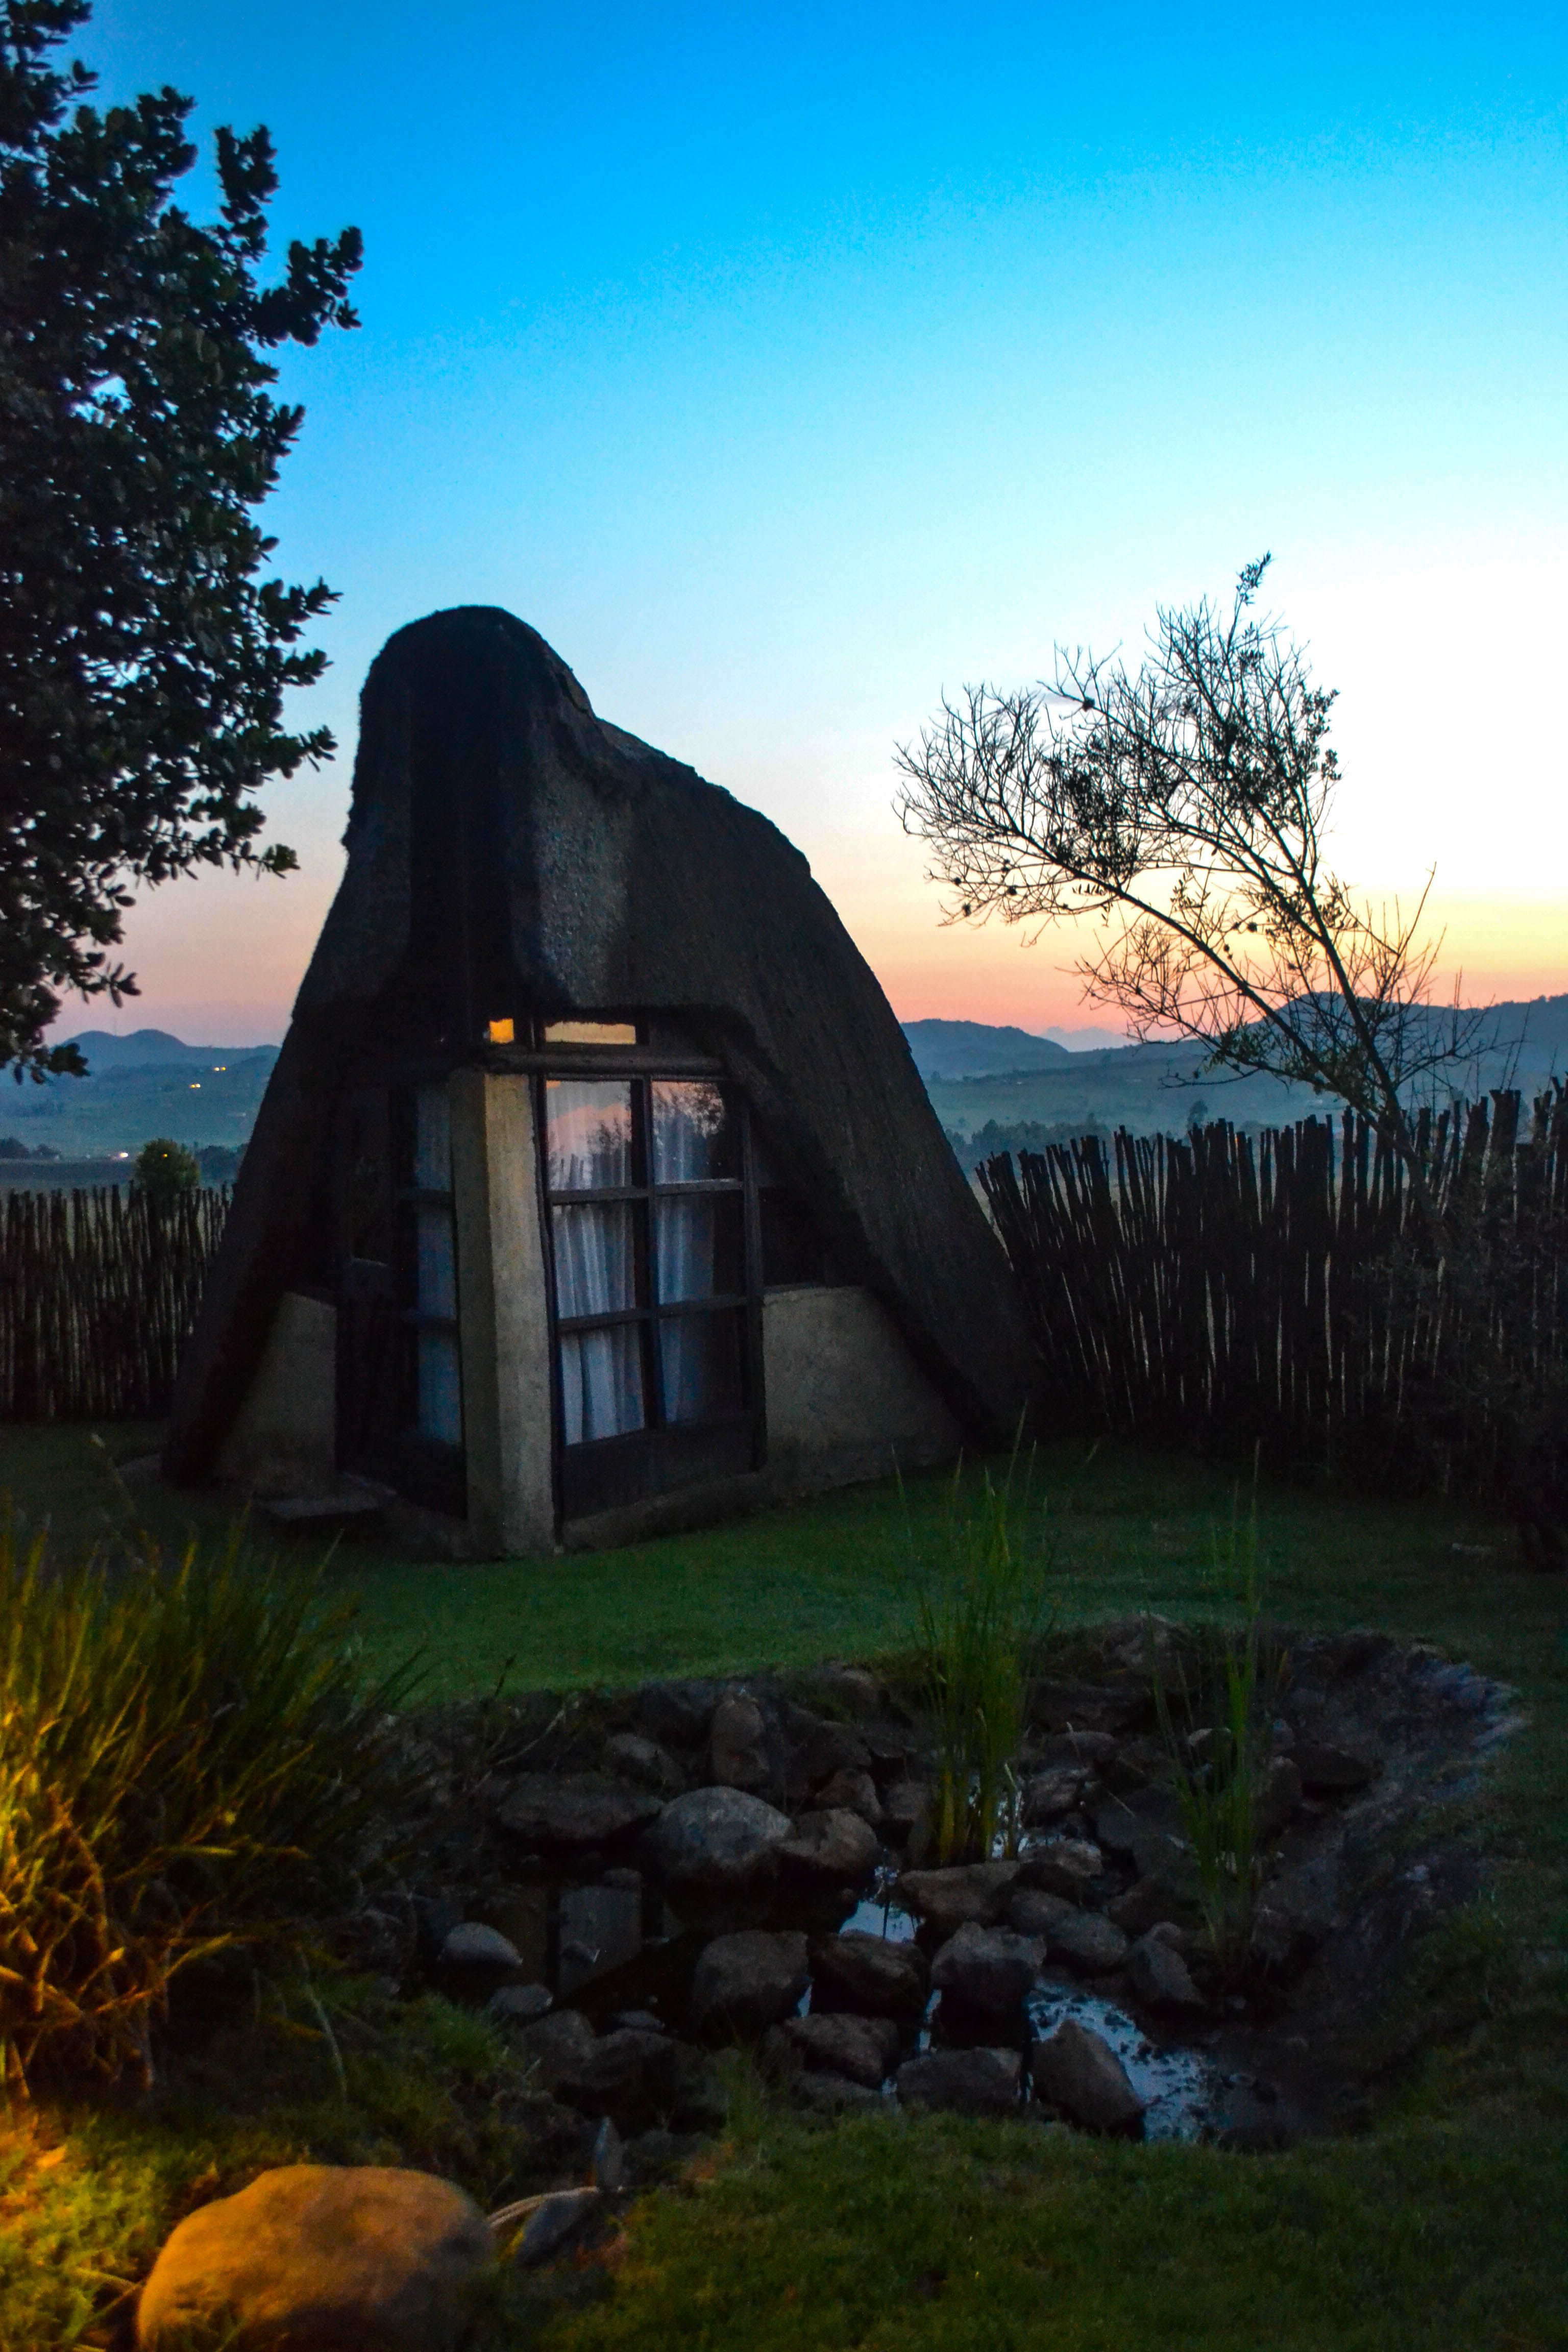 Thatched-roof chalets at Hawane Resort, Swaziland